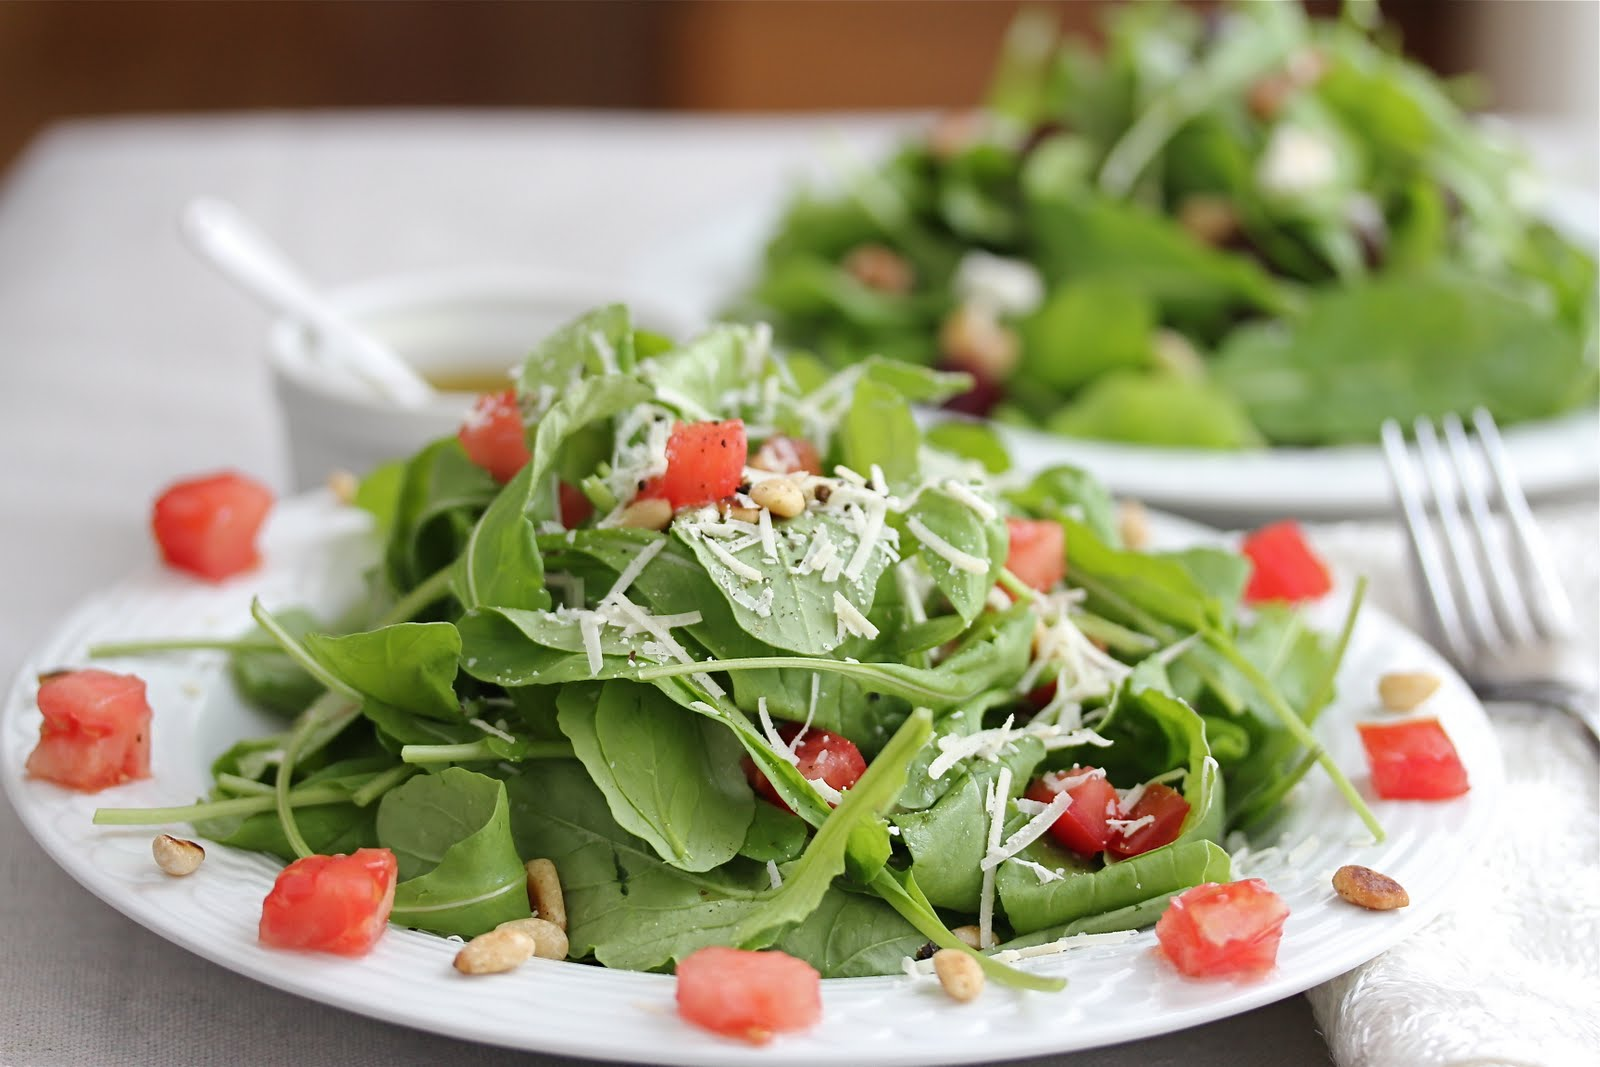 Arugula and Tomato Salad with Lemon Olive Oil Dressing